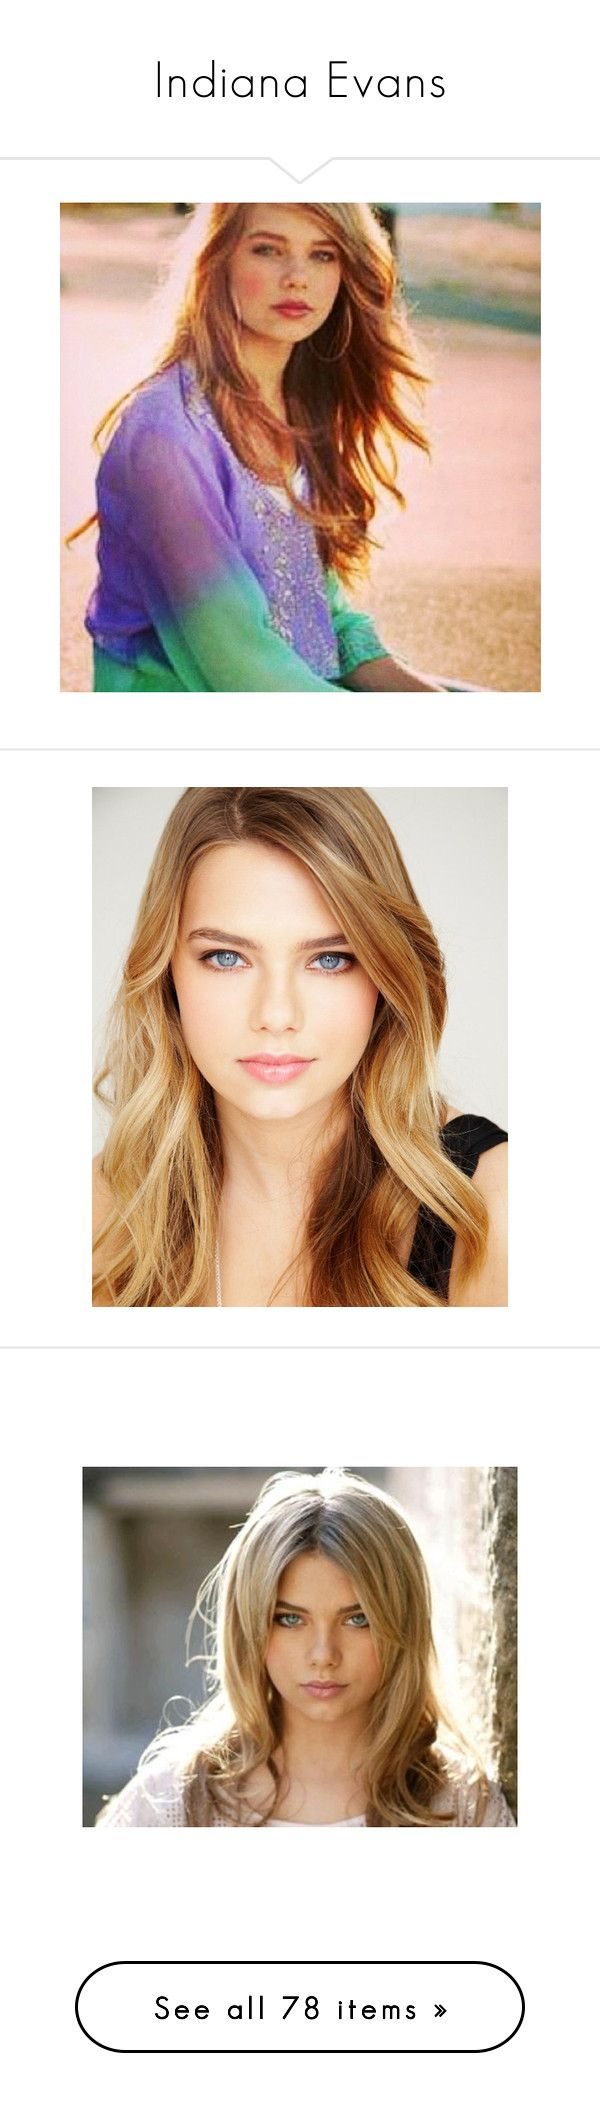 """""""Indiana Evans"""" by rominix011 ❤ liked on Polyvore featuring indiana evans, girls, people, hair, celebrities, accessories, hair accessories, models, role play and индиана эванс"""